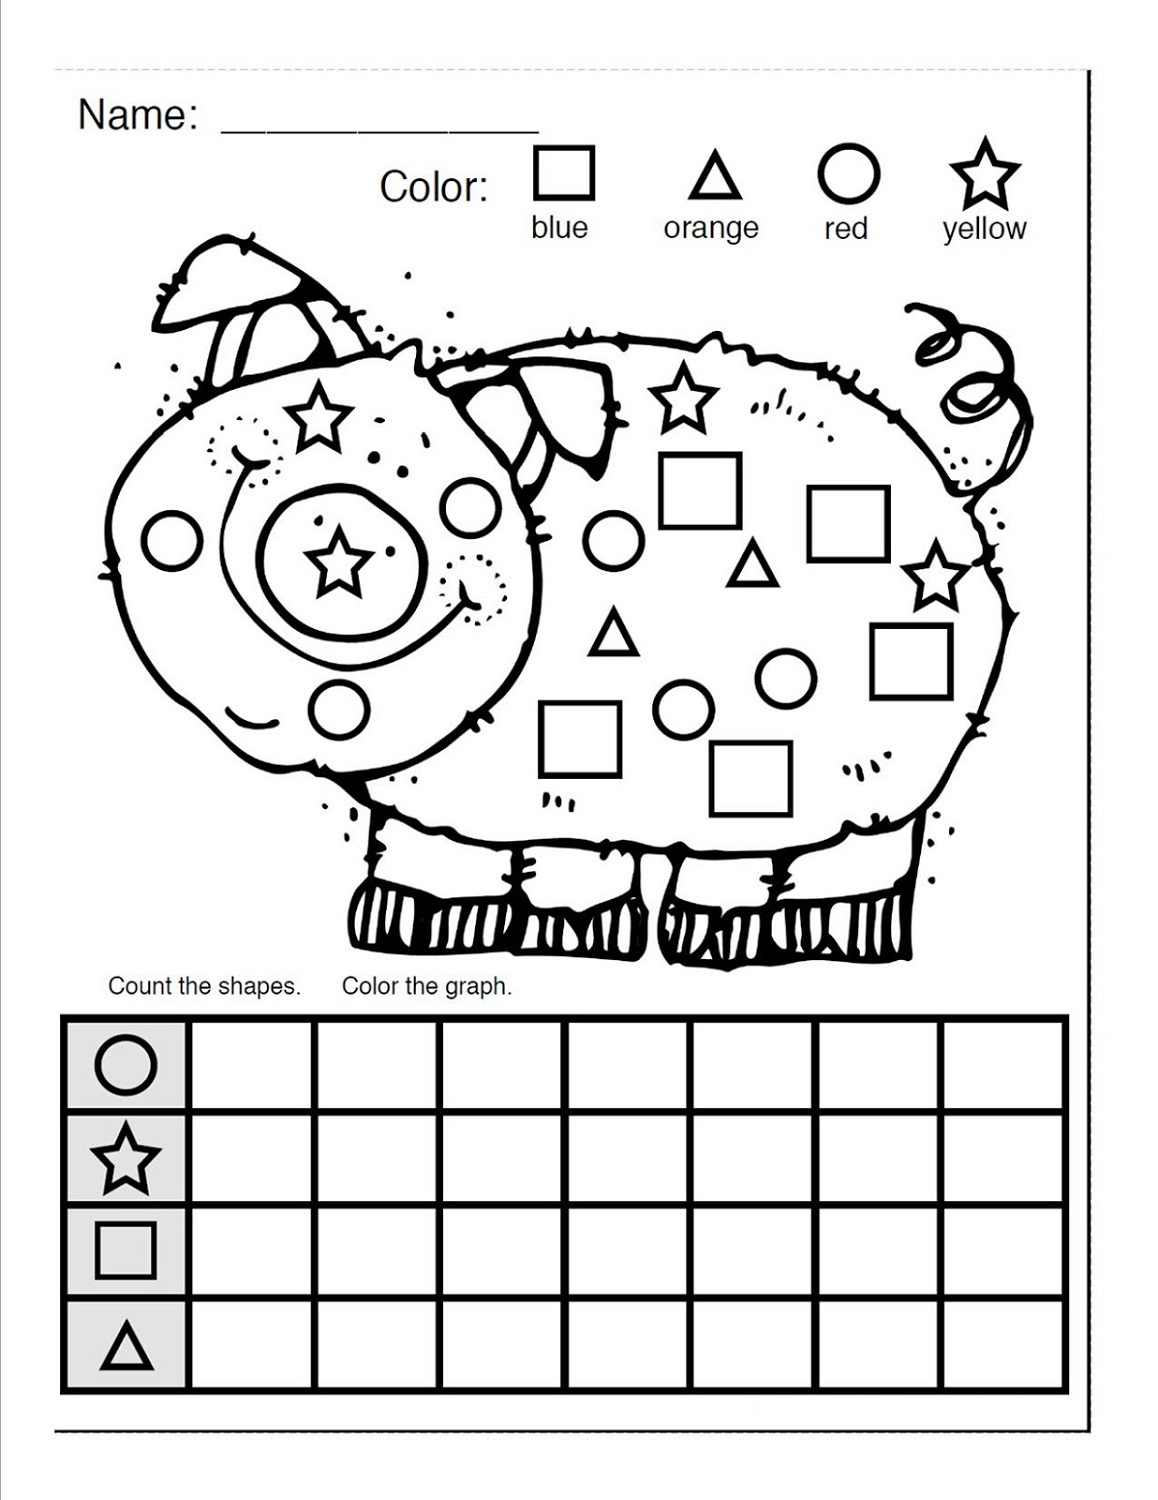 Plain Shape Worksheet